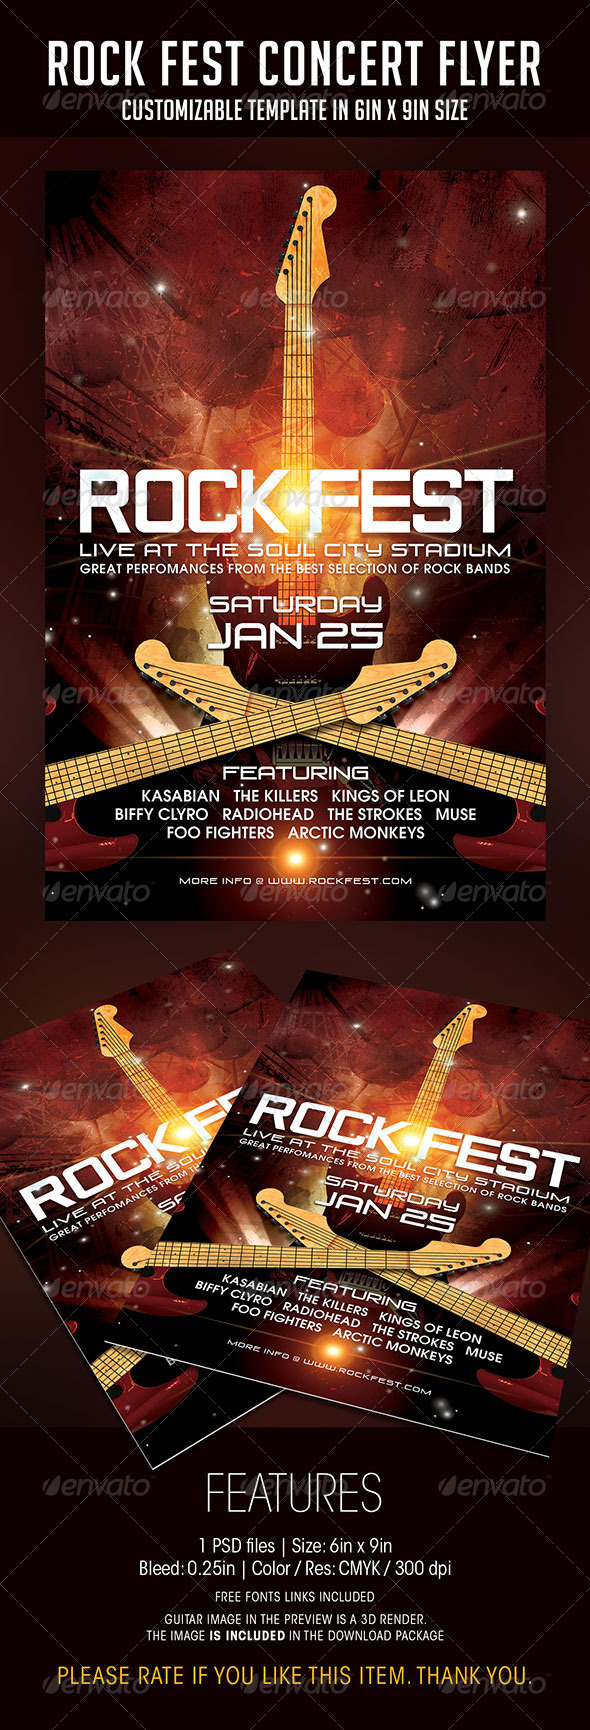 Rock Fest Concert Flyer - Concerts Events